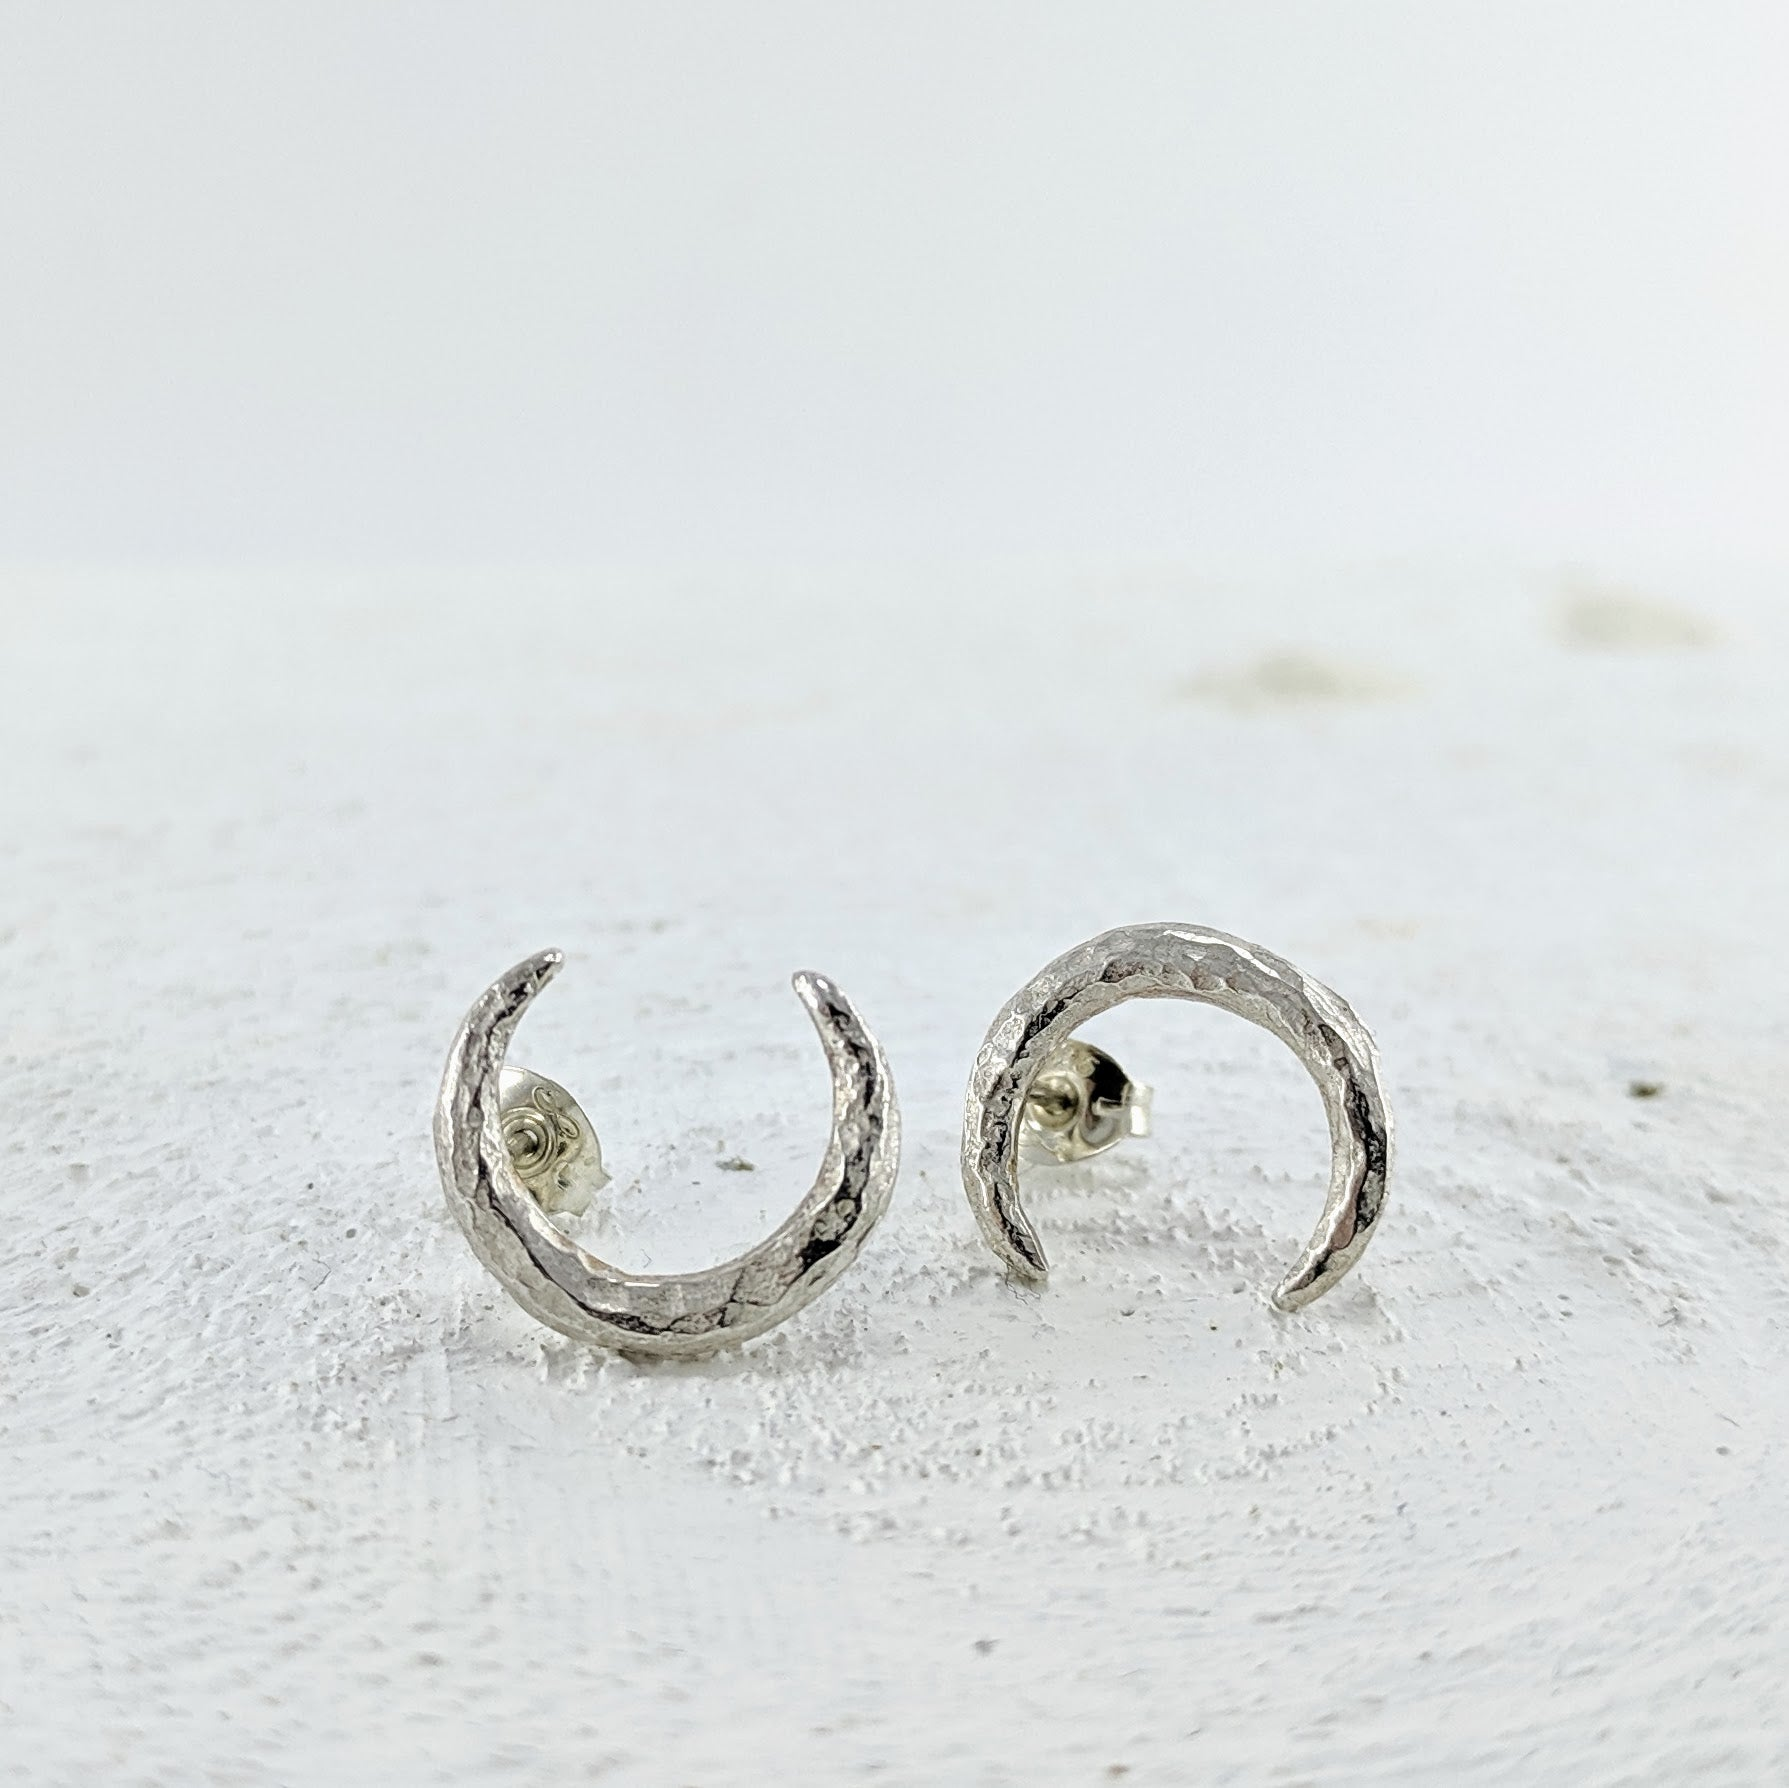 These silver stud earrings are handmade by Tom Richards. They are small hammer textured crecents with silver posts and butterfly backs.